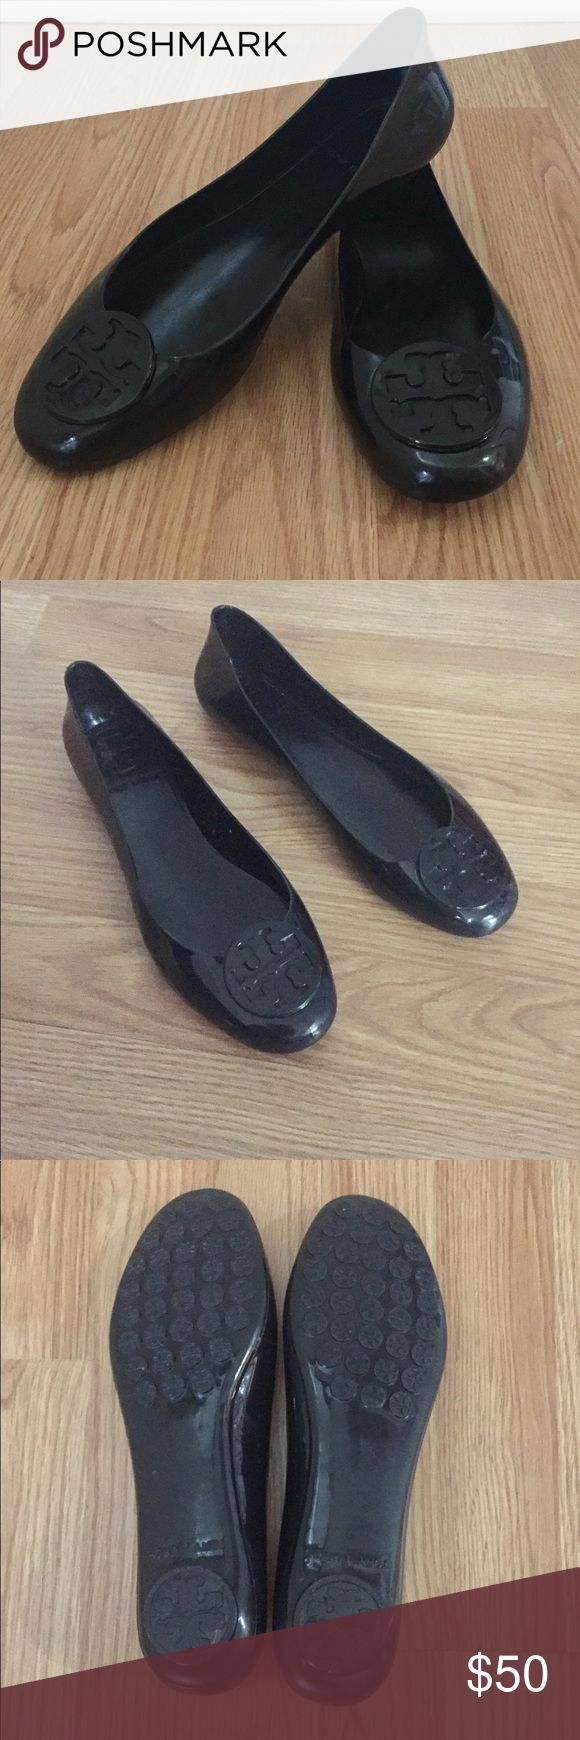 Tory Burch Reva Jelly Flats Tory Burch Reva Jelly Flats. Black. Size 8. Great for everyday use or for inclement weather.  Pre-owned - minor scuff marks on sides and minor wear in sole near toes. Nothing major just normal usage wear. Please see all pictures and let me know if you have any questions! Reasonable offers welcome. Tory Burch Shoes Flats & Loafers